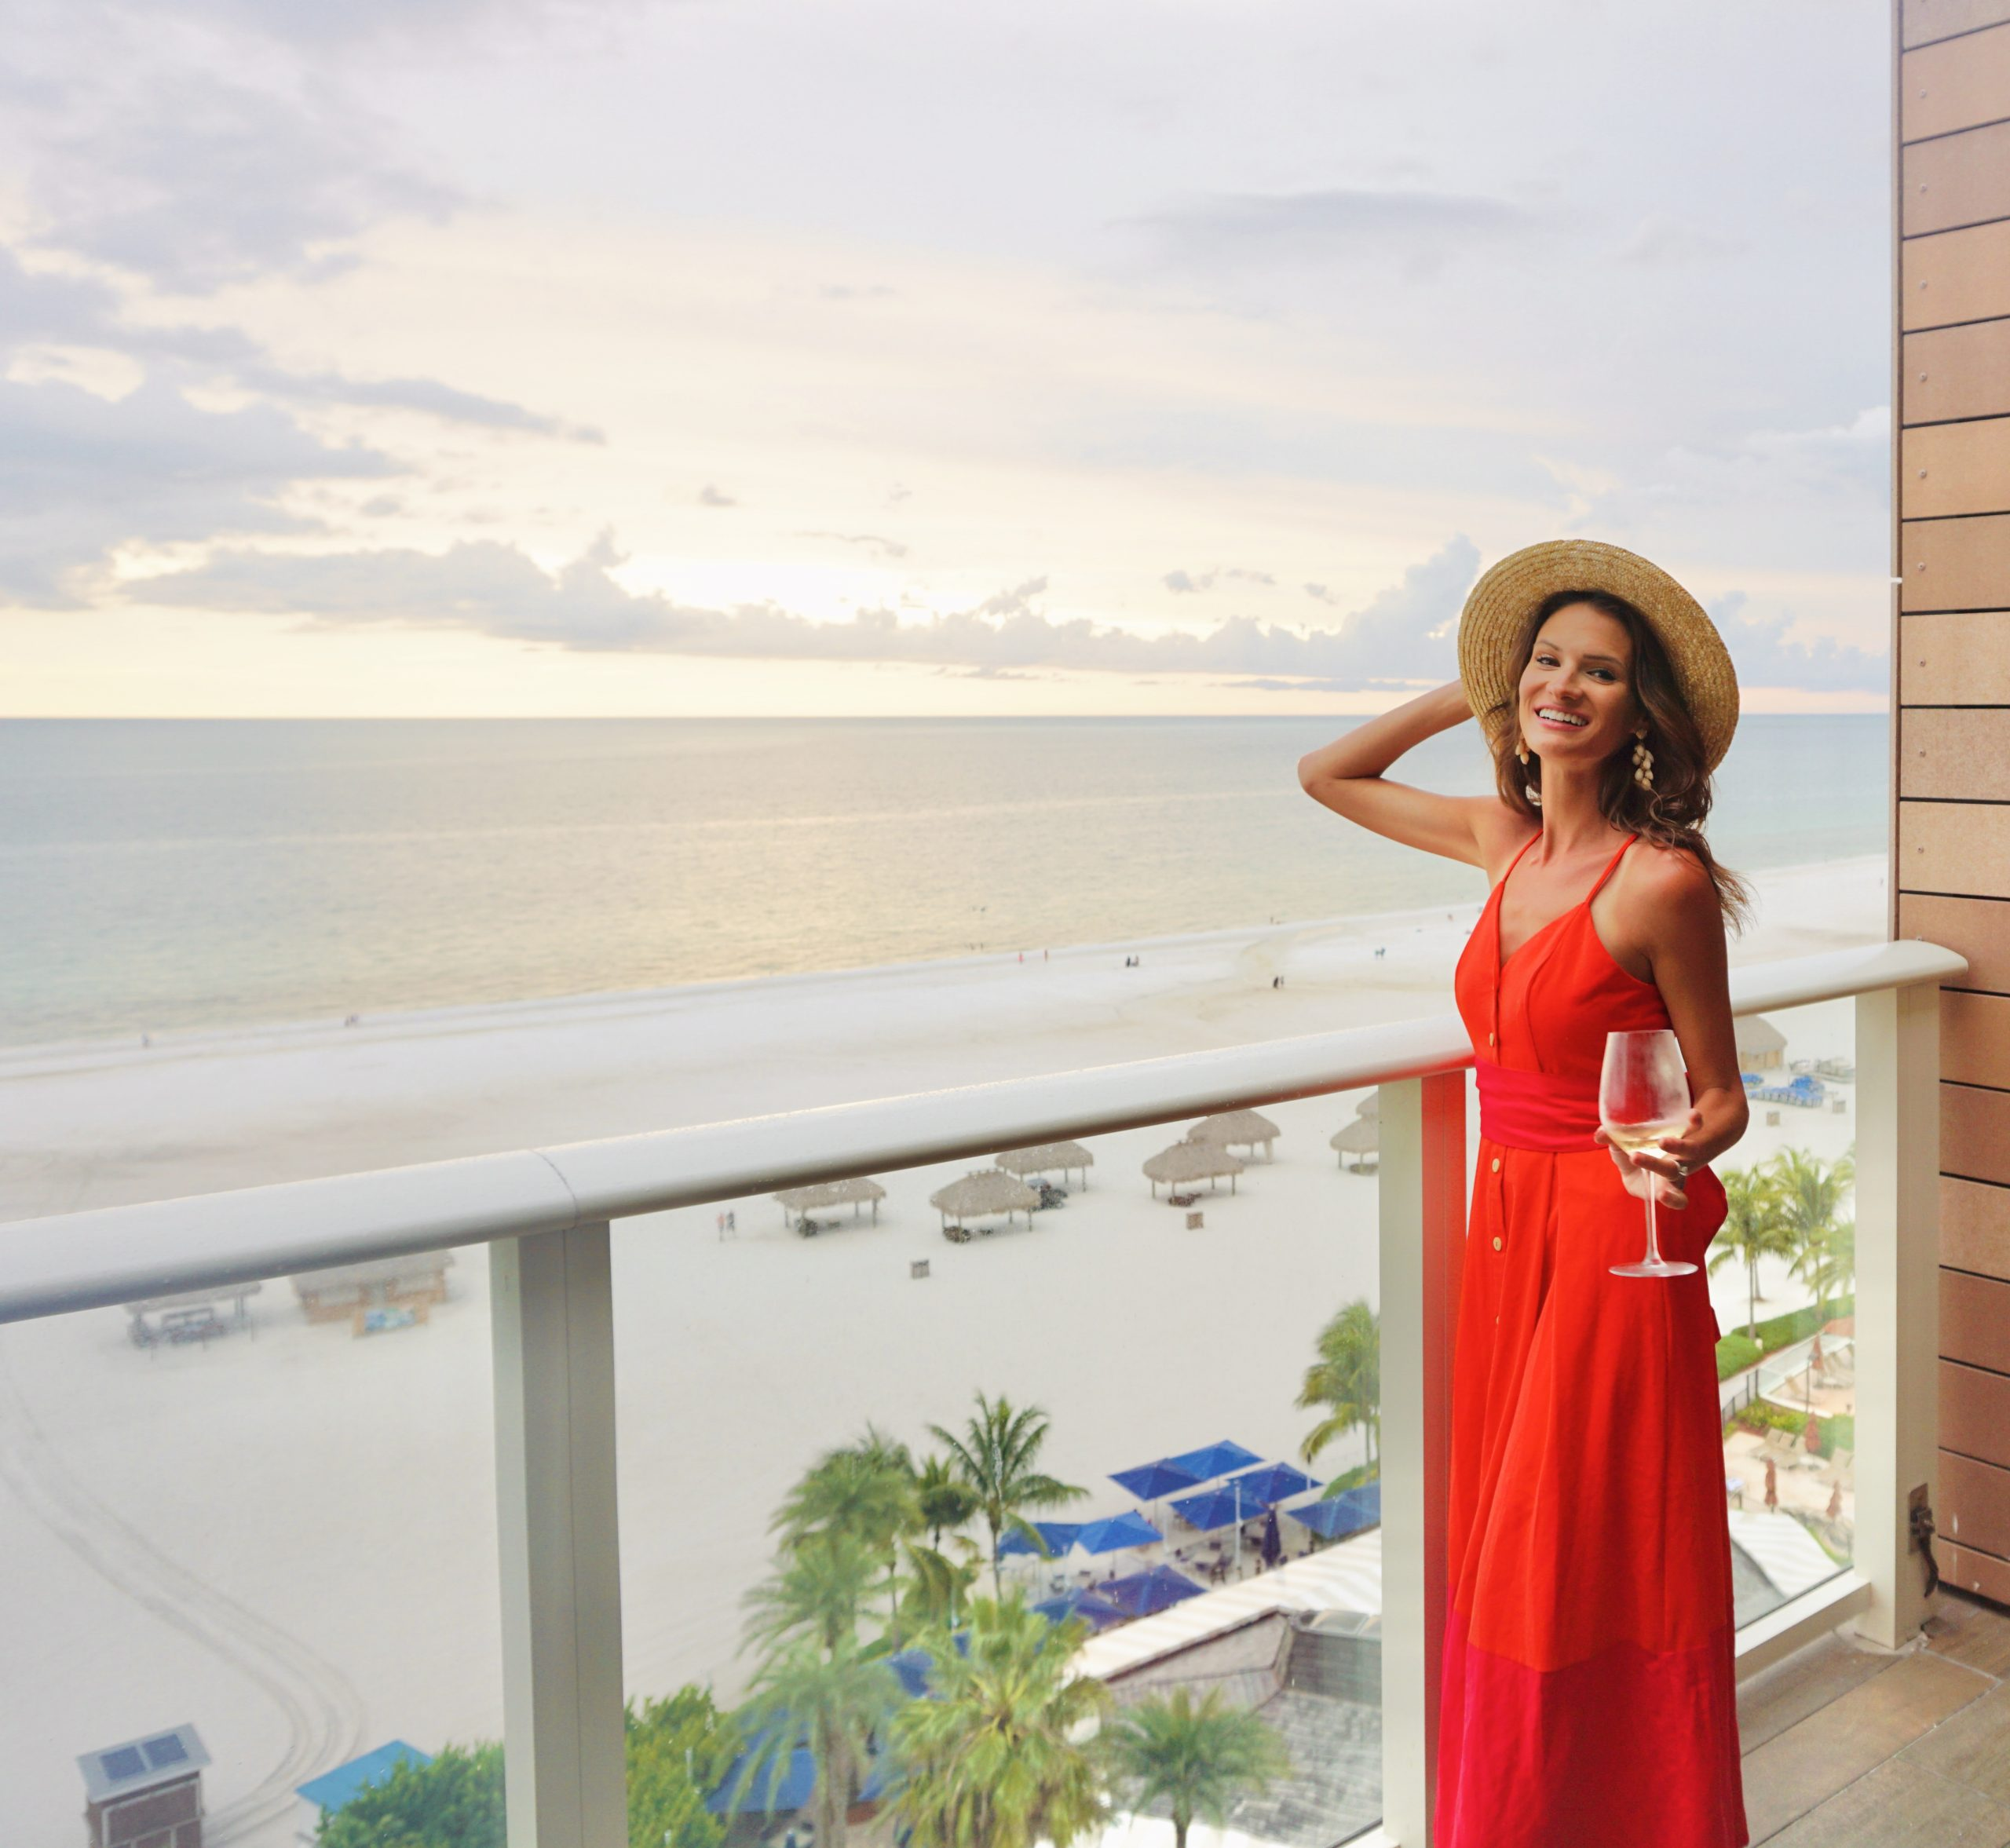 Paradise by Sirene at the JW Marriott Resort in Marco Island